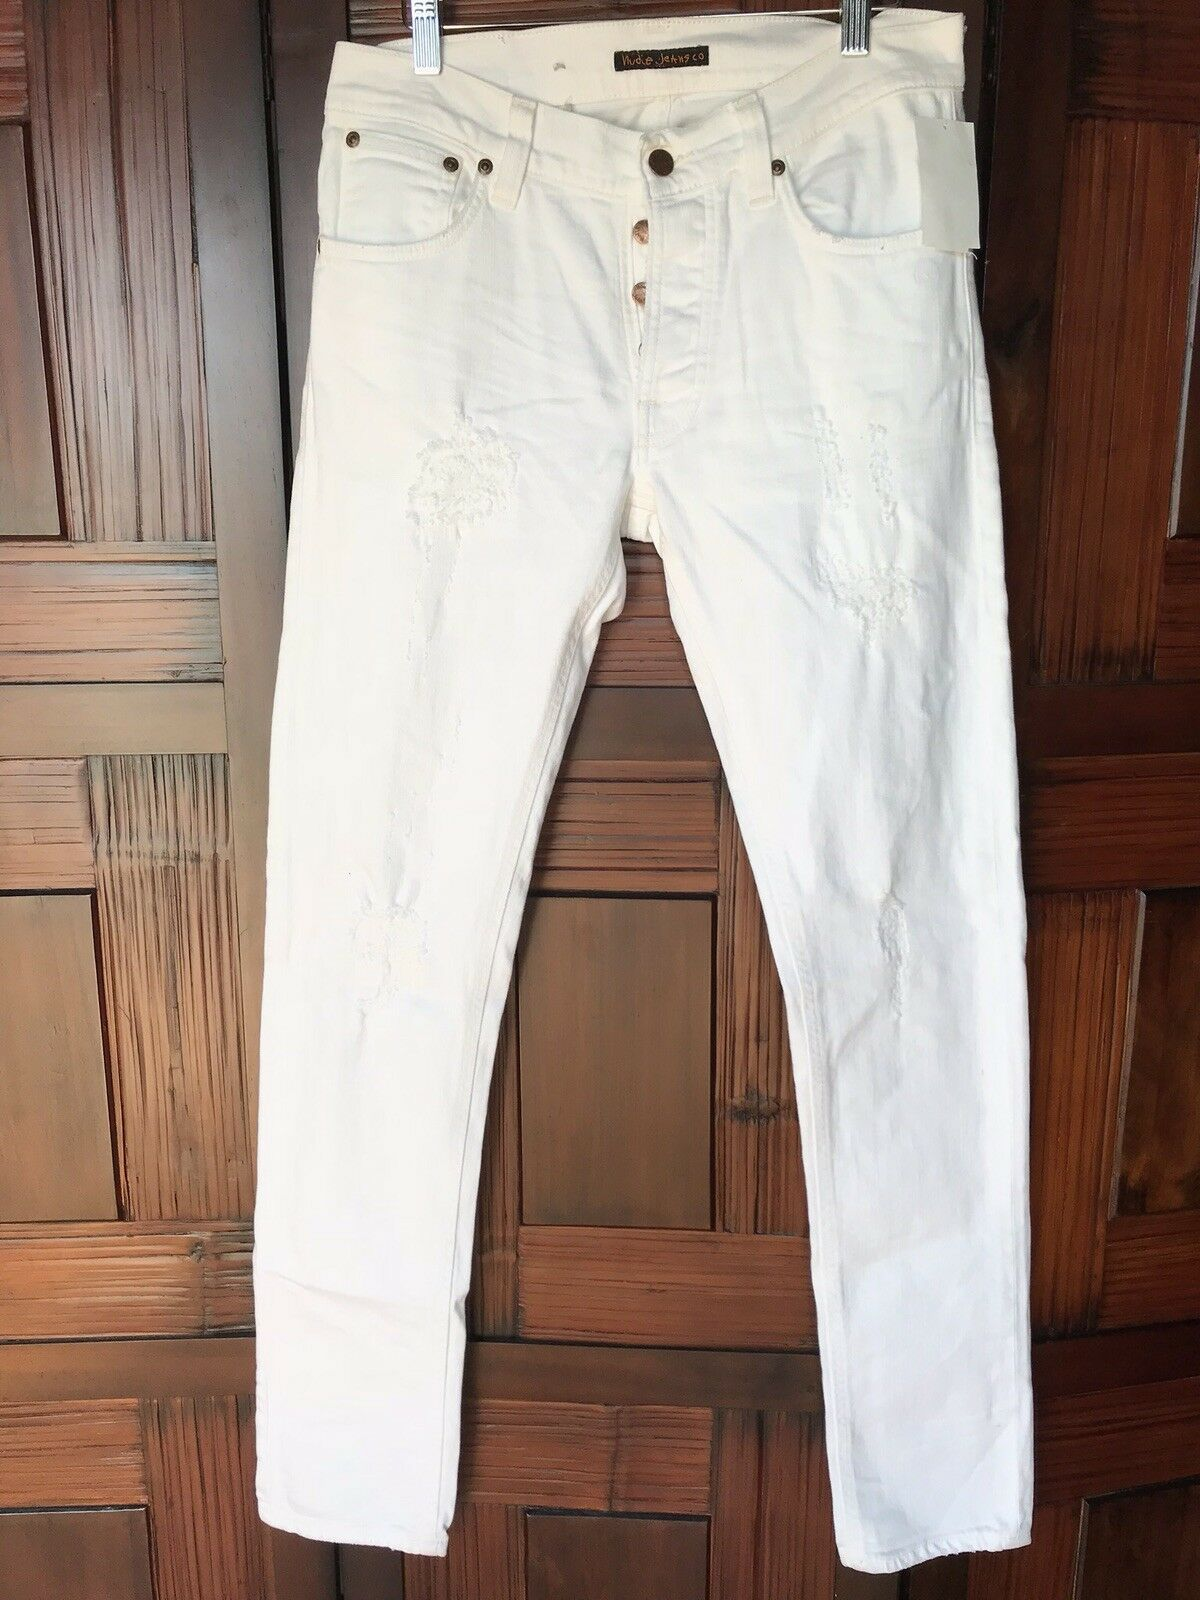 Nudie Jeans Tilted Tor Pitch White Jeans in Organic Cotton Size 31W 34L NEW